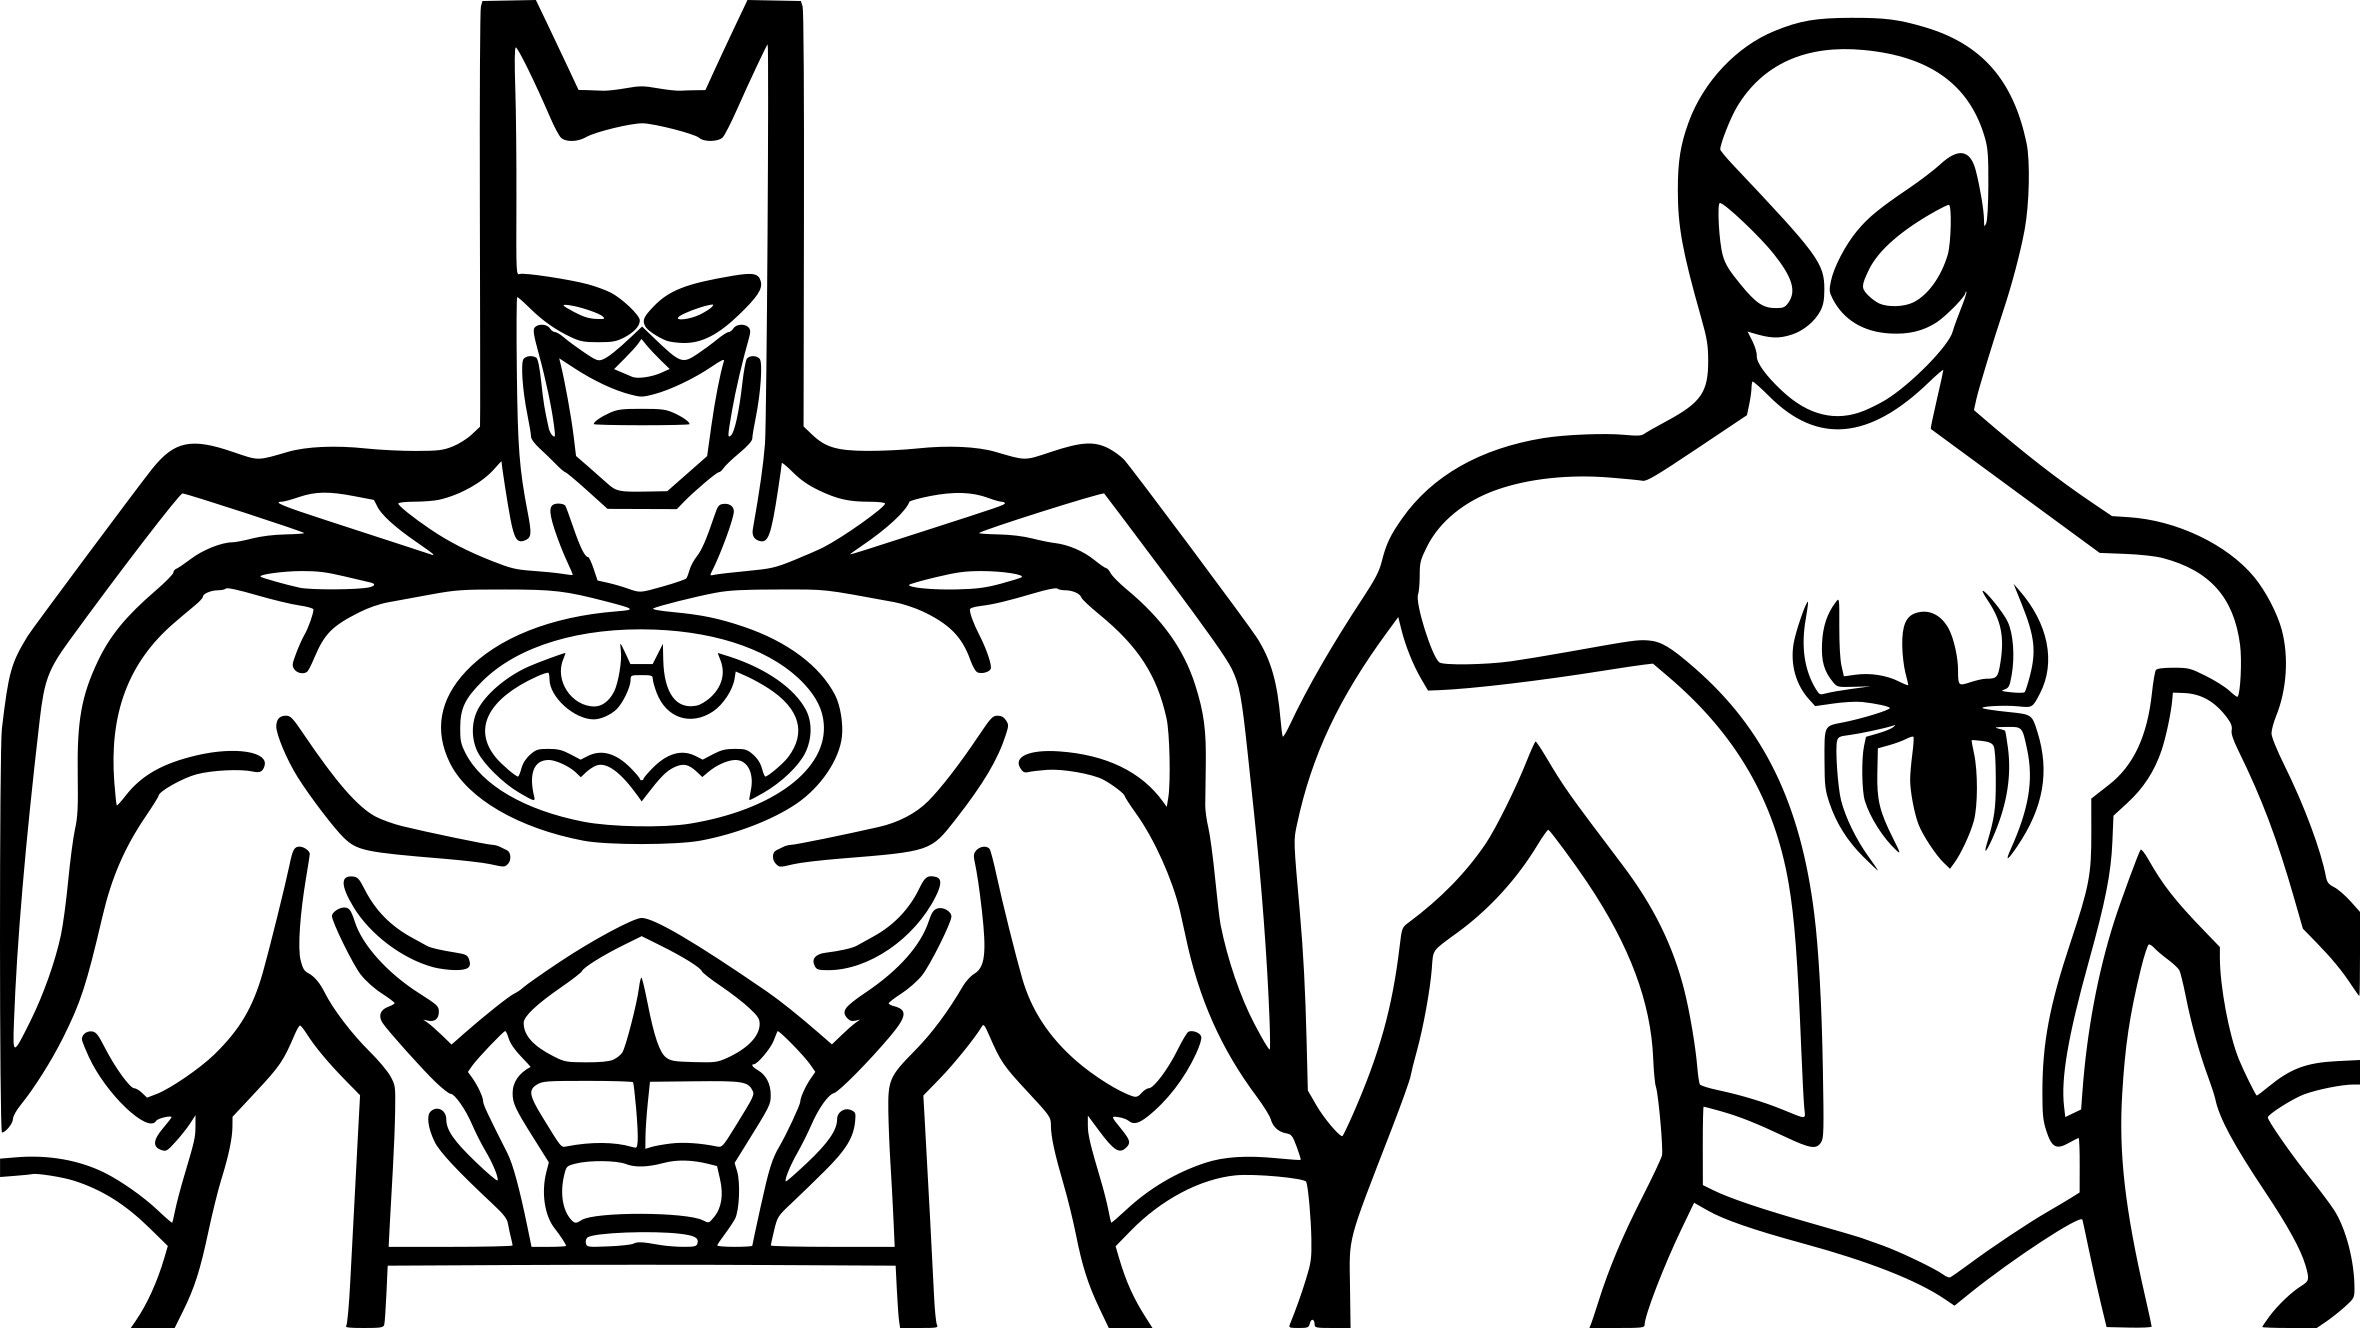 Coloriage Spiderman Et Batman À Imprimer Sur Coloriages Par Rapport à Dessin Spider Man